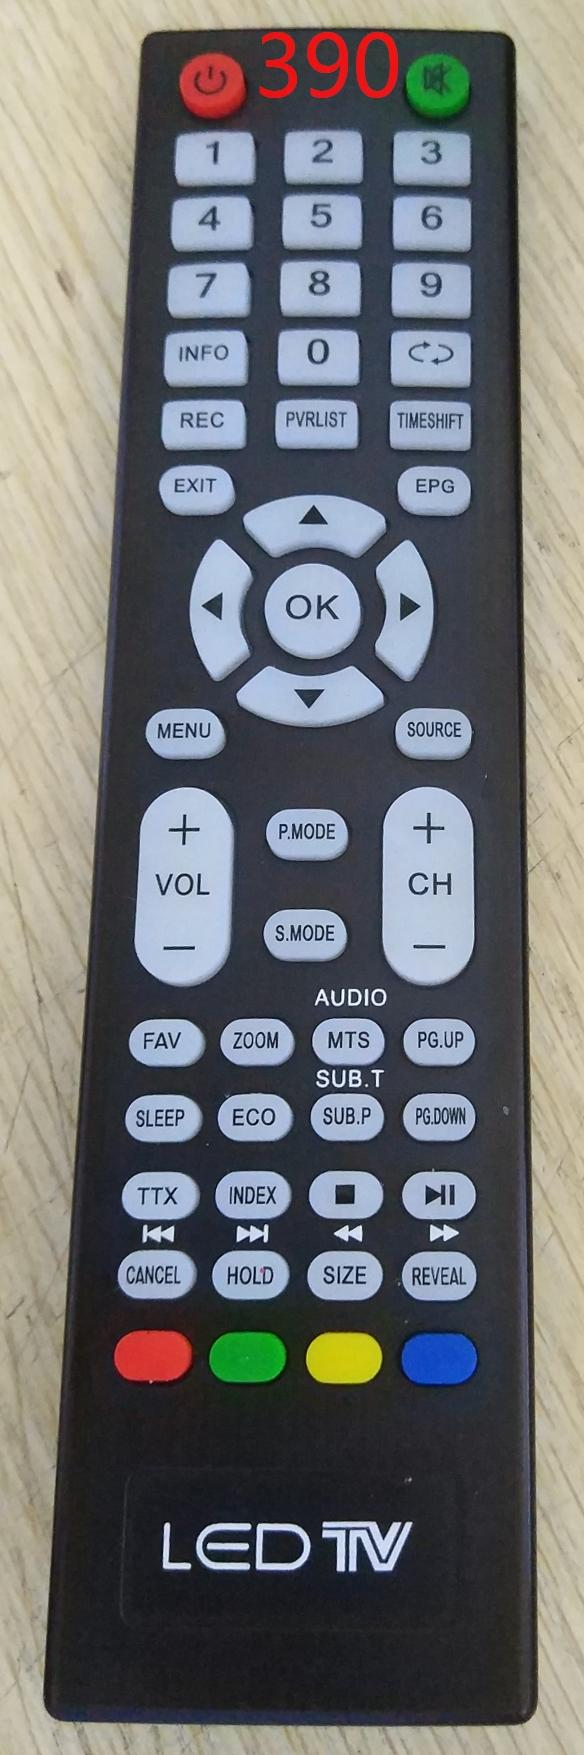 waterproof remote control